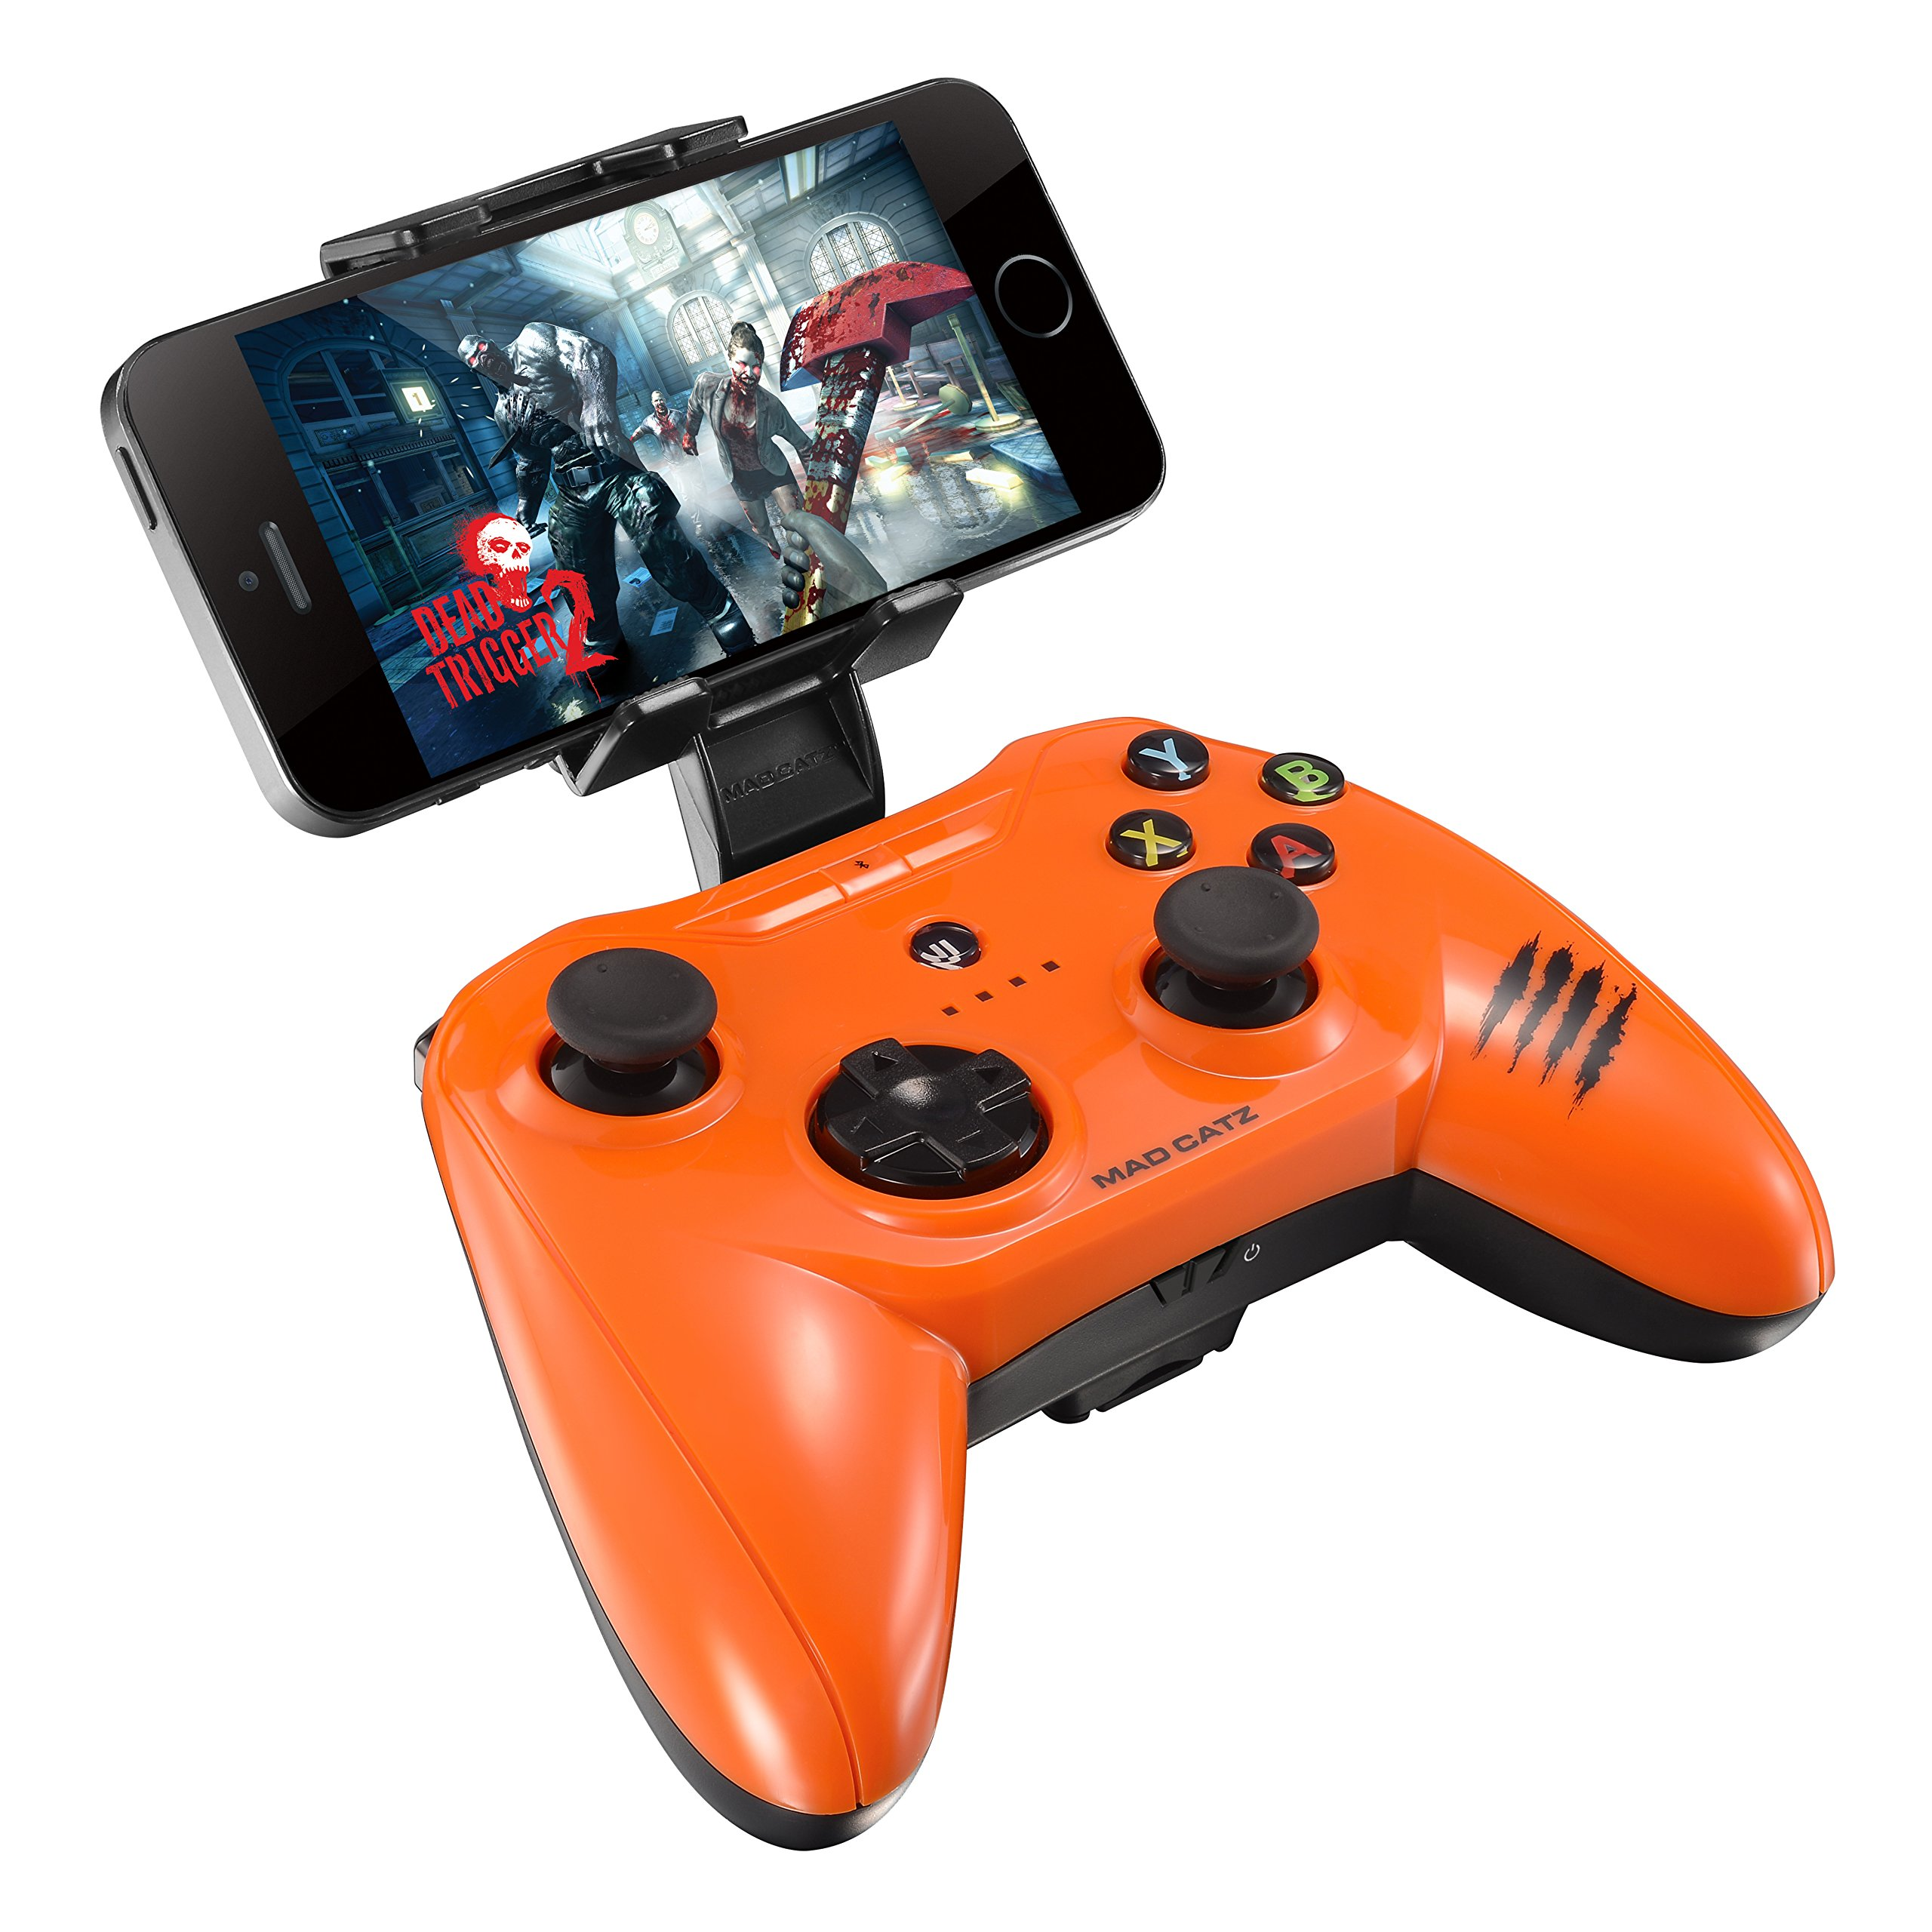 Saitek C.t.r.l.i Mobile Gamepad For Apple Ipod, Iphone, And Ipad - Wireless - Bluetoothiphone, Ipad, Ipad Mini, Ipad Air, Ipod, Ipod Touch (mcb312630a10-04-1)